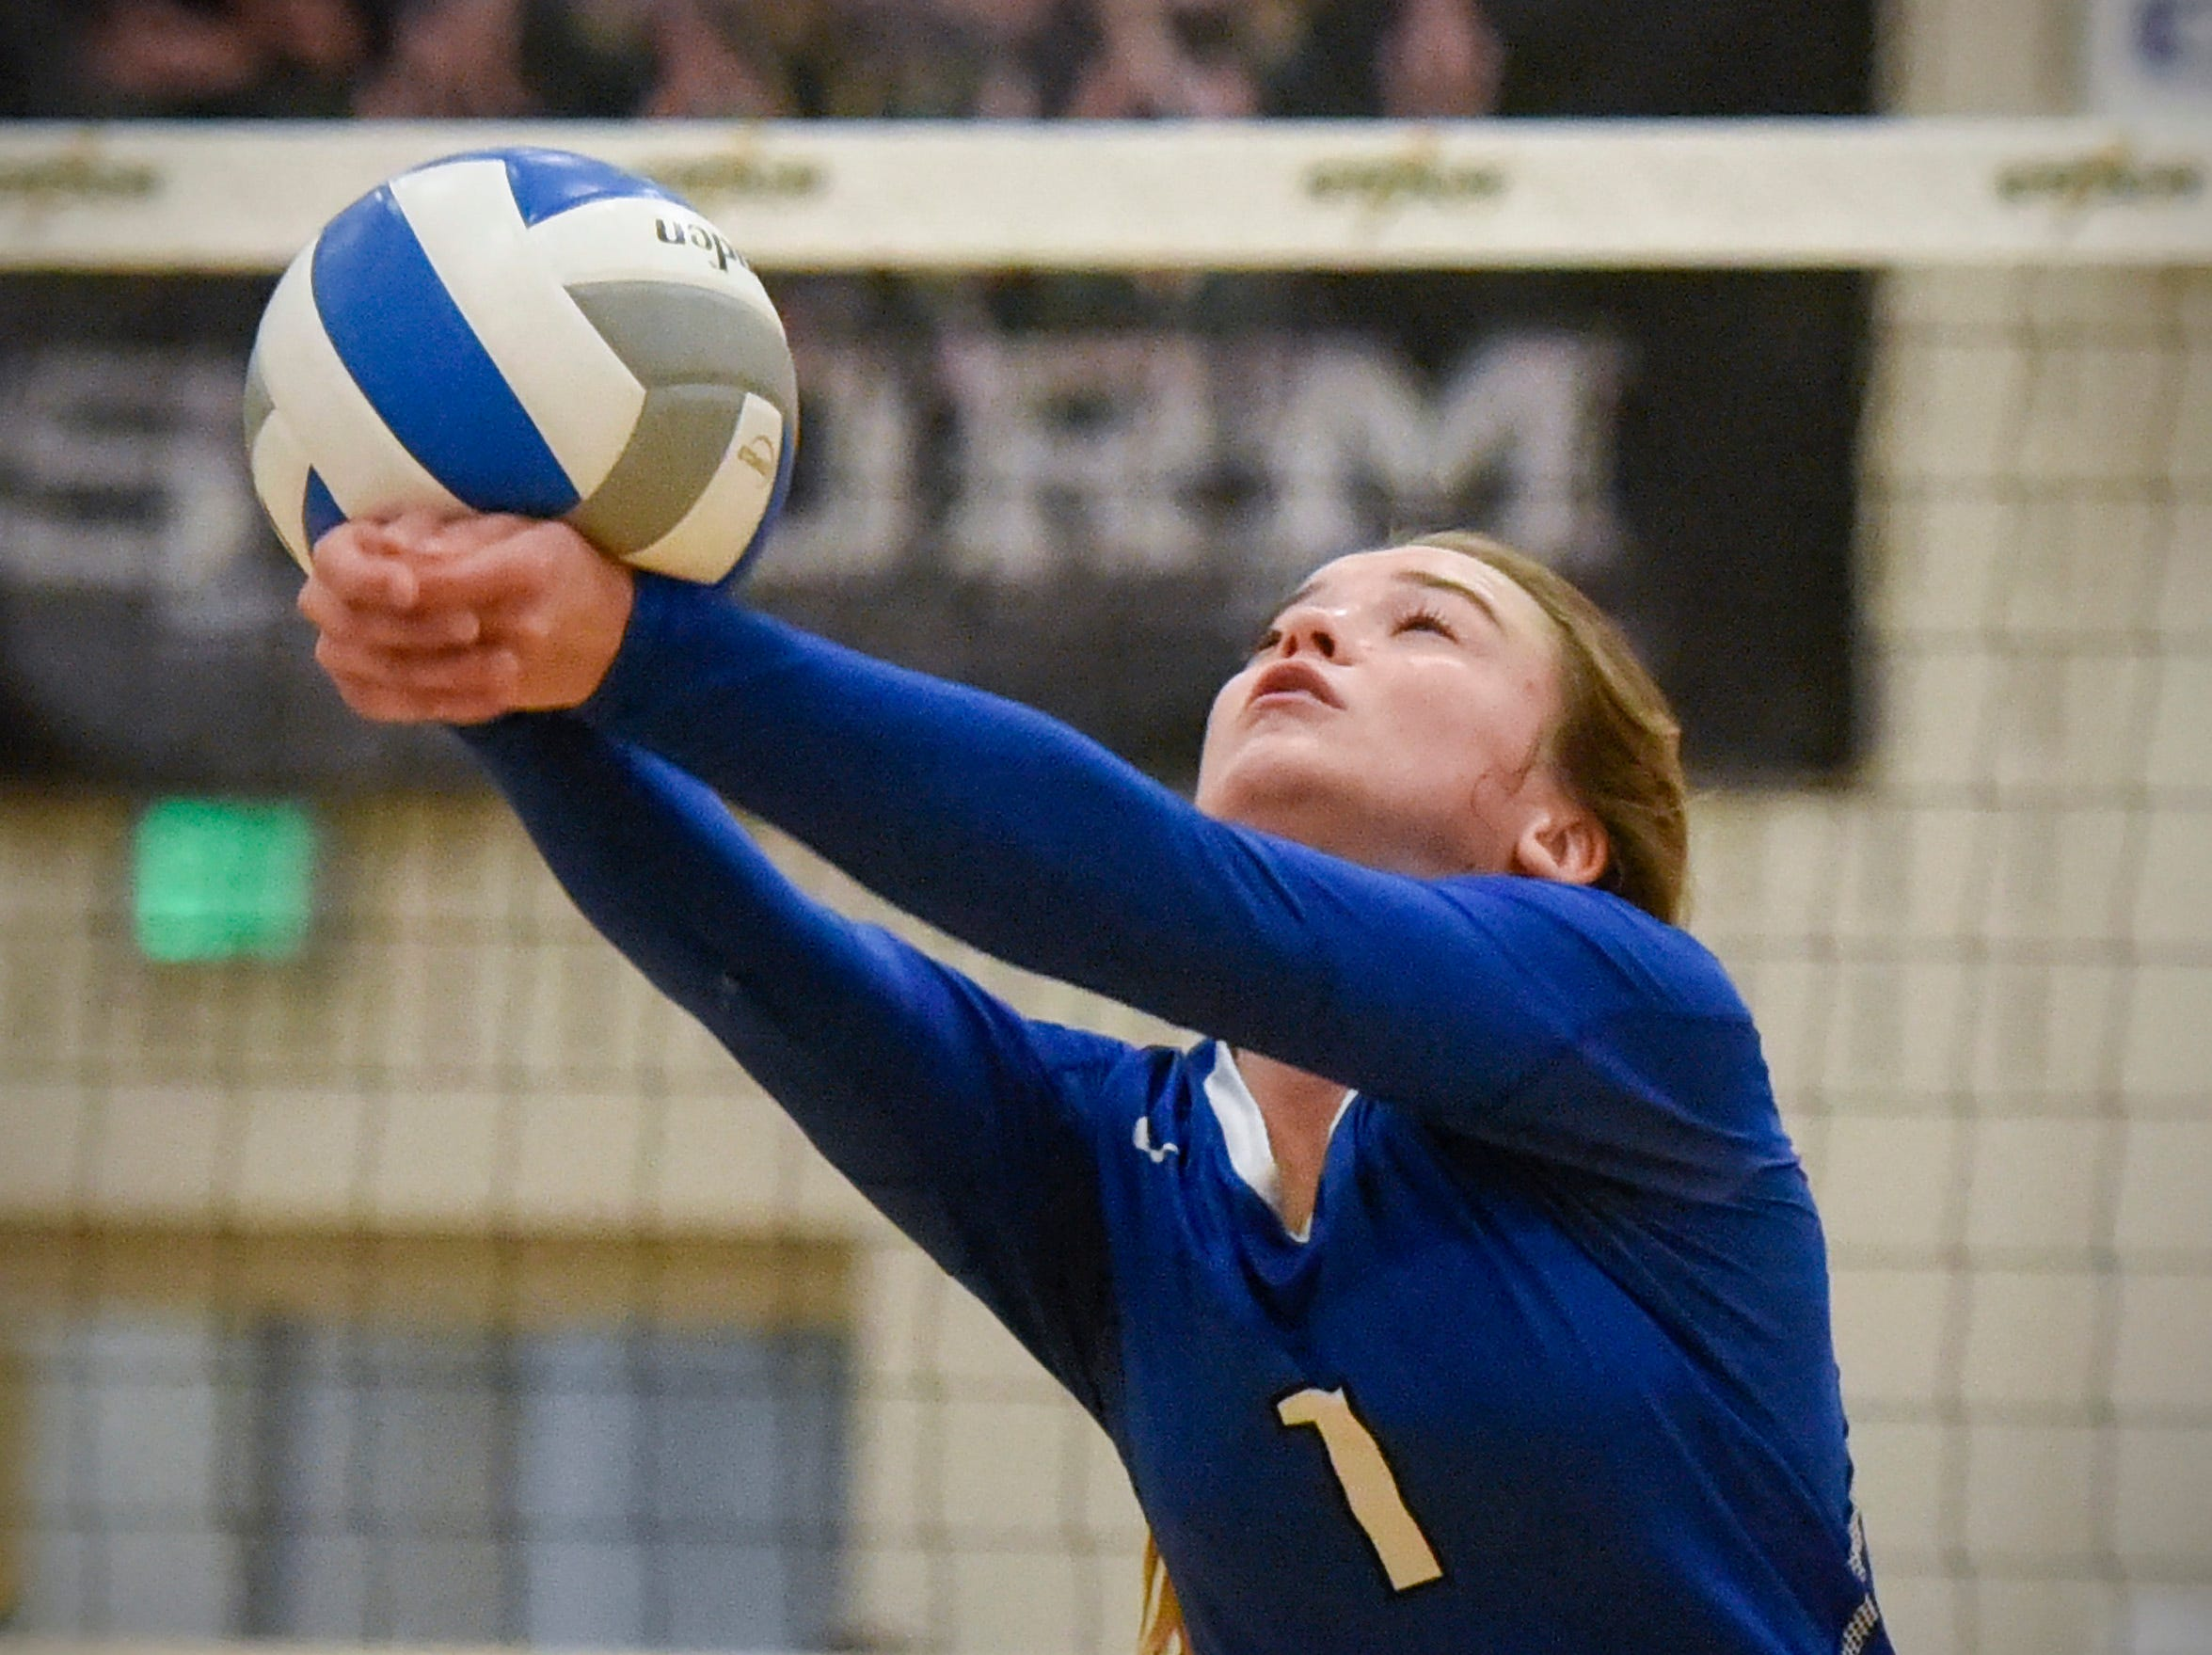 Sartell's Hope Grasswick bumps the ball up toward the net against Sauk Rapids during the first game Thursday, Sept. 13, at Sauk Rapids.